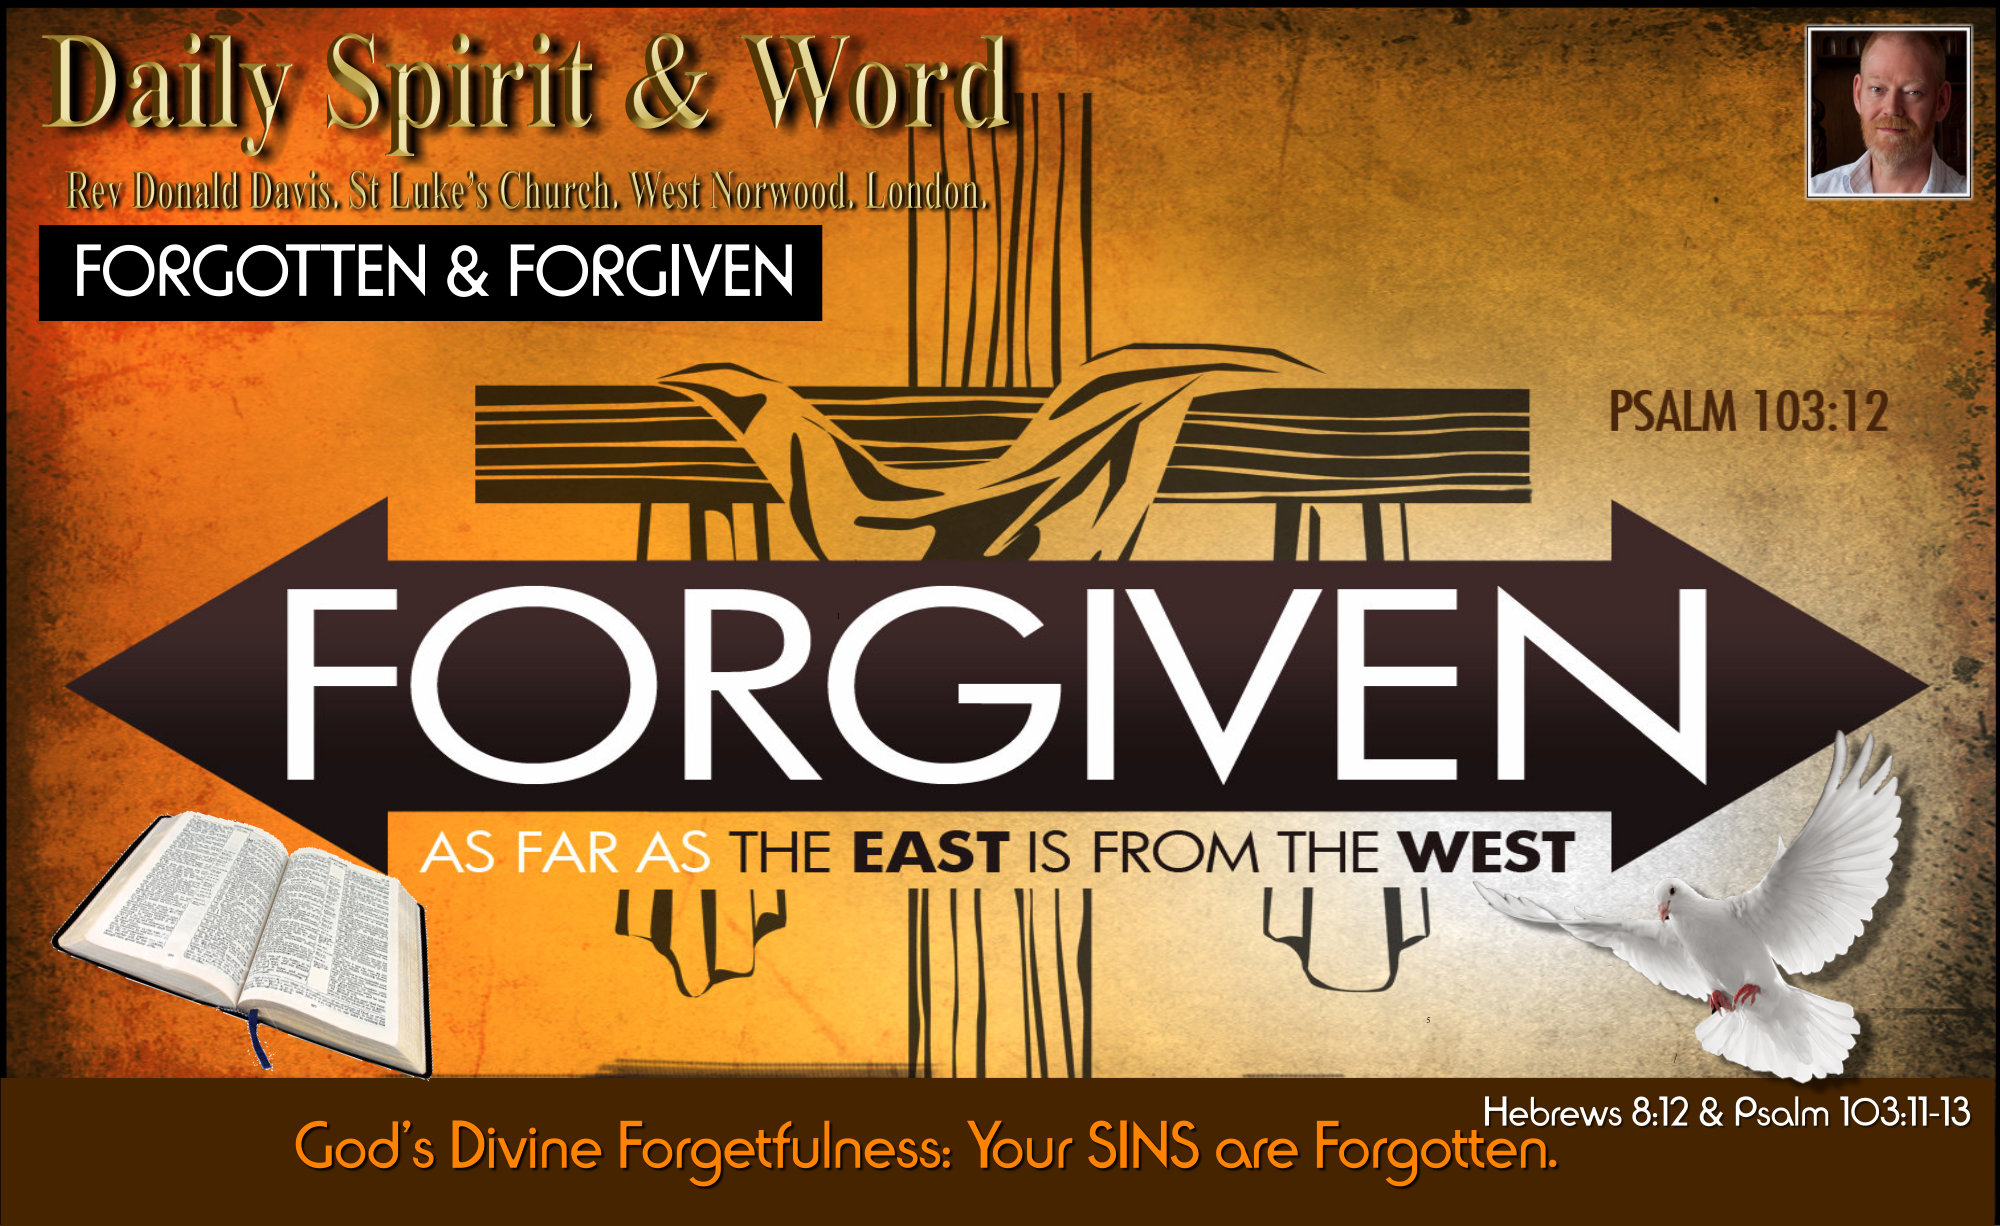 What God chooses to forget, your sins. What God chooses to Remember, your good deeds